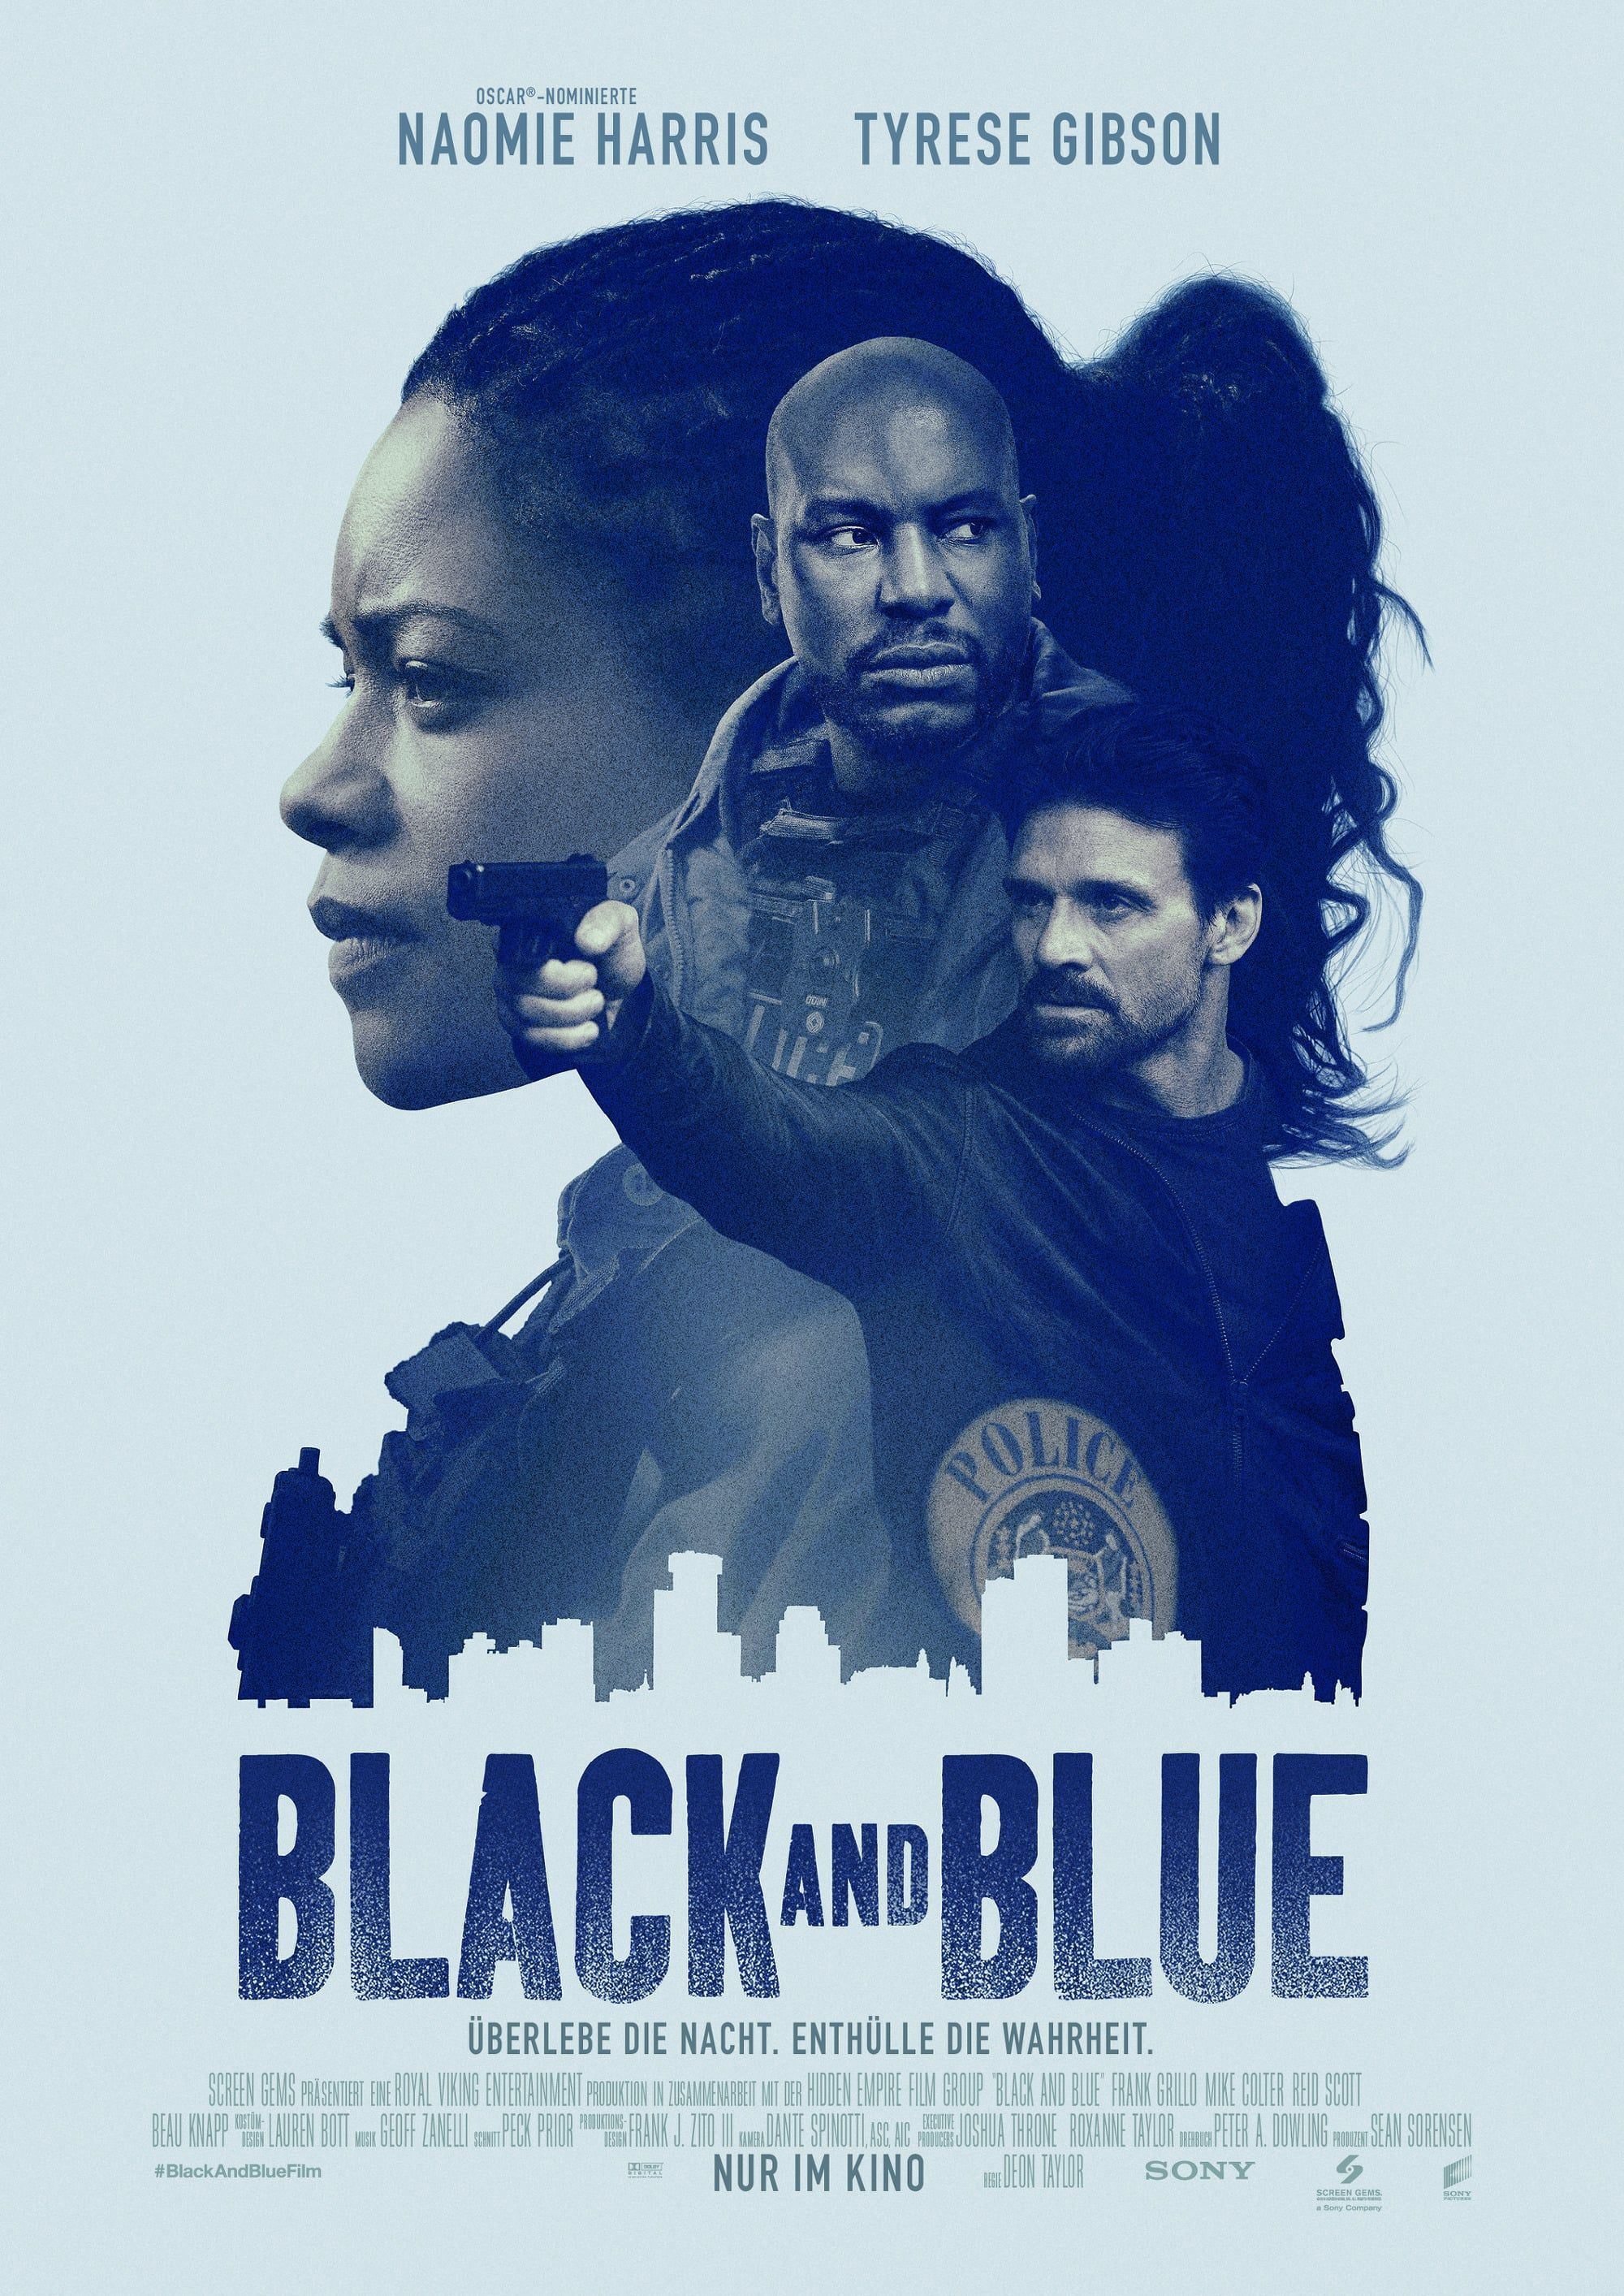 Assistir Filme Completo Black And Blue Free Movies Online Full Movies Online Free Blue Black